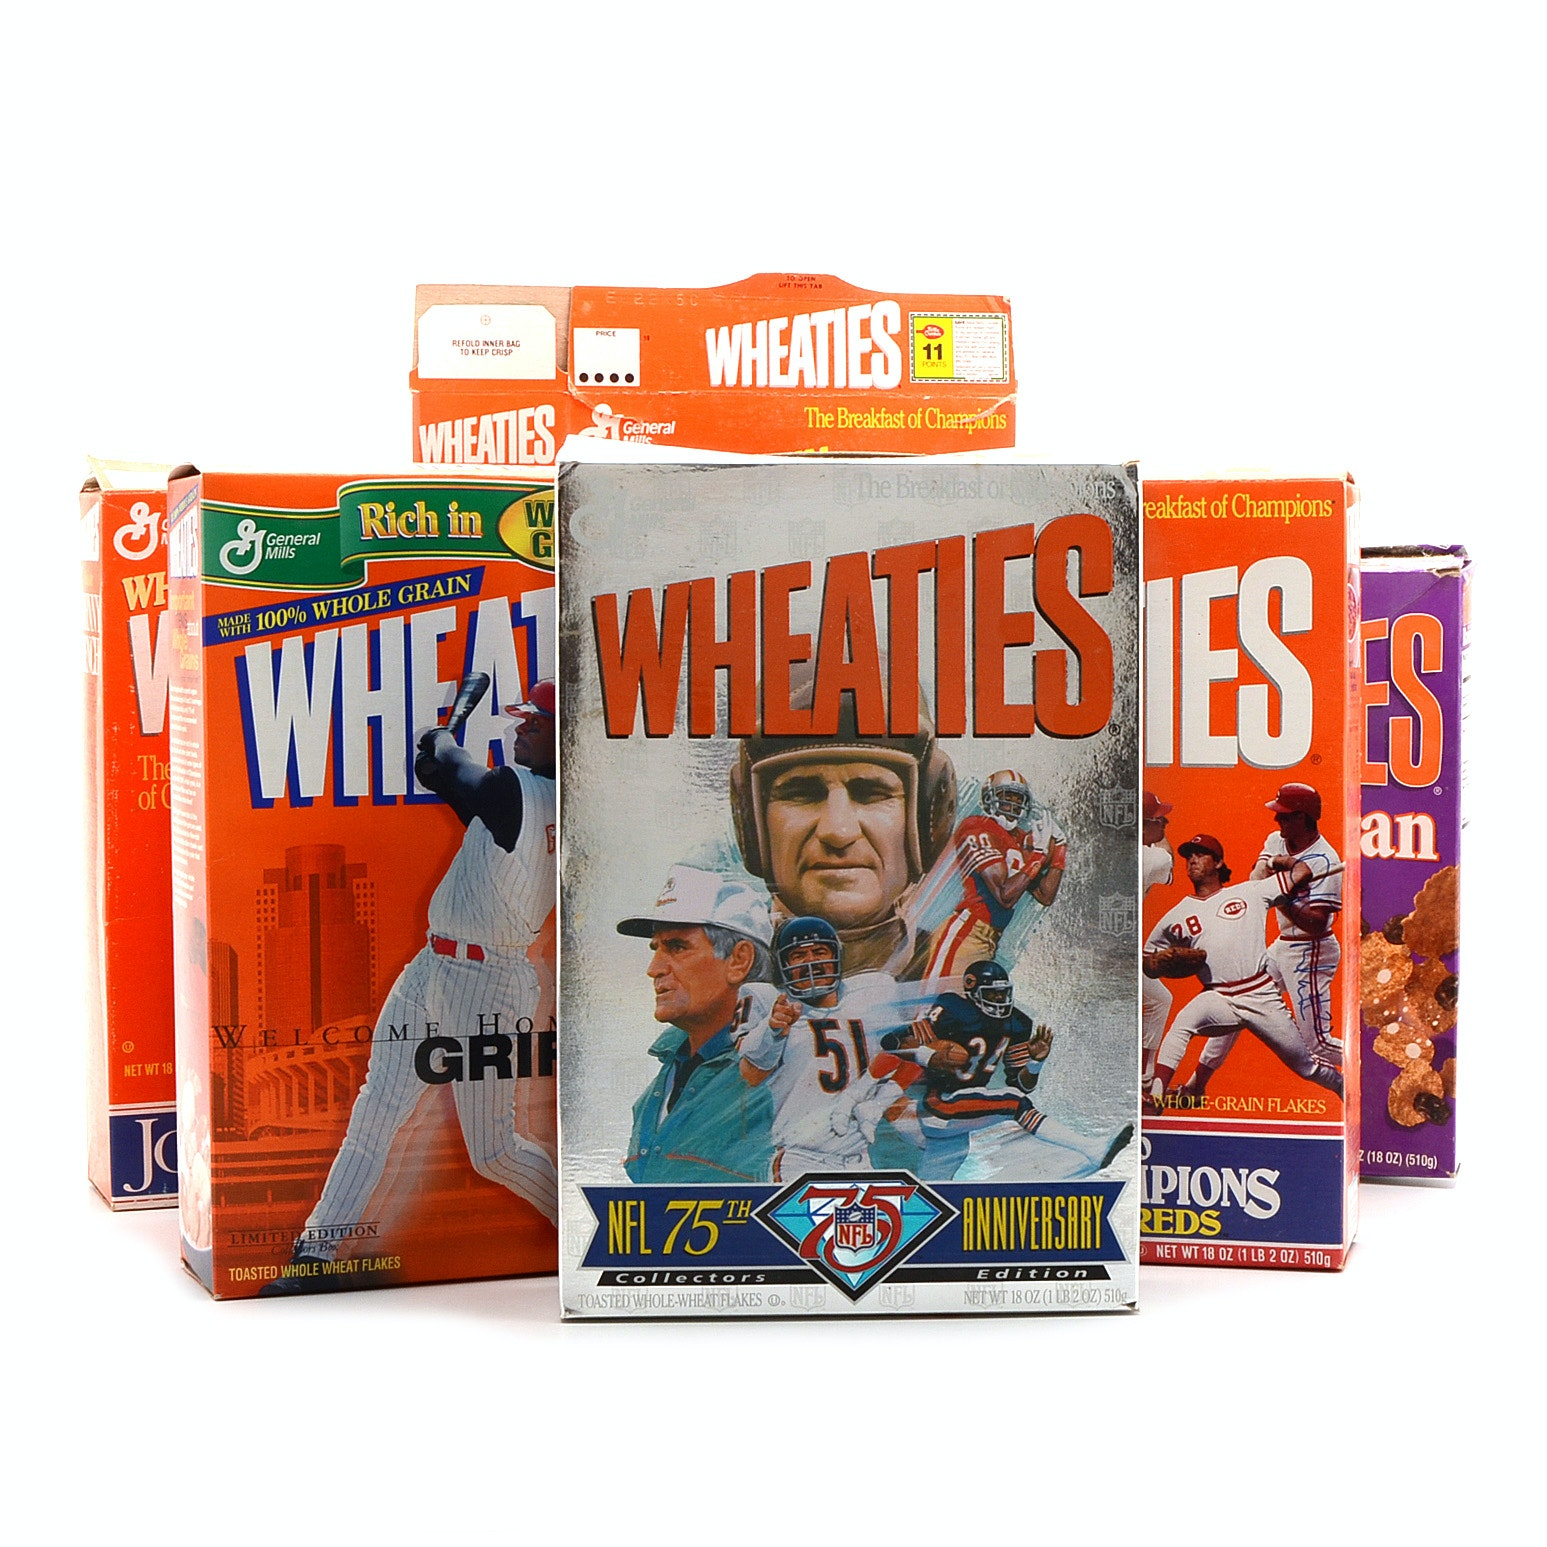 Collectible Wheaties Boxes